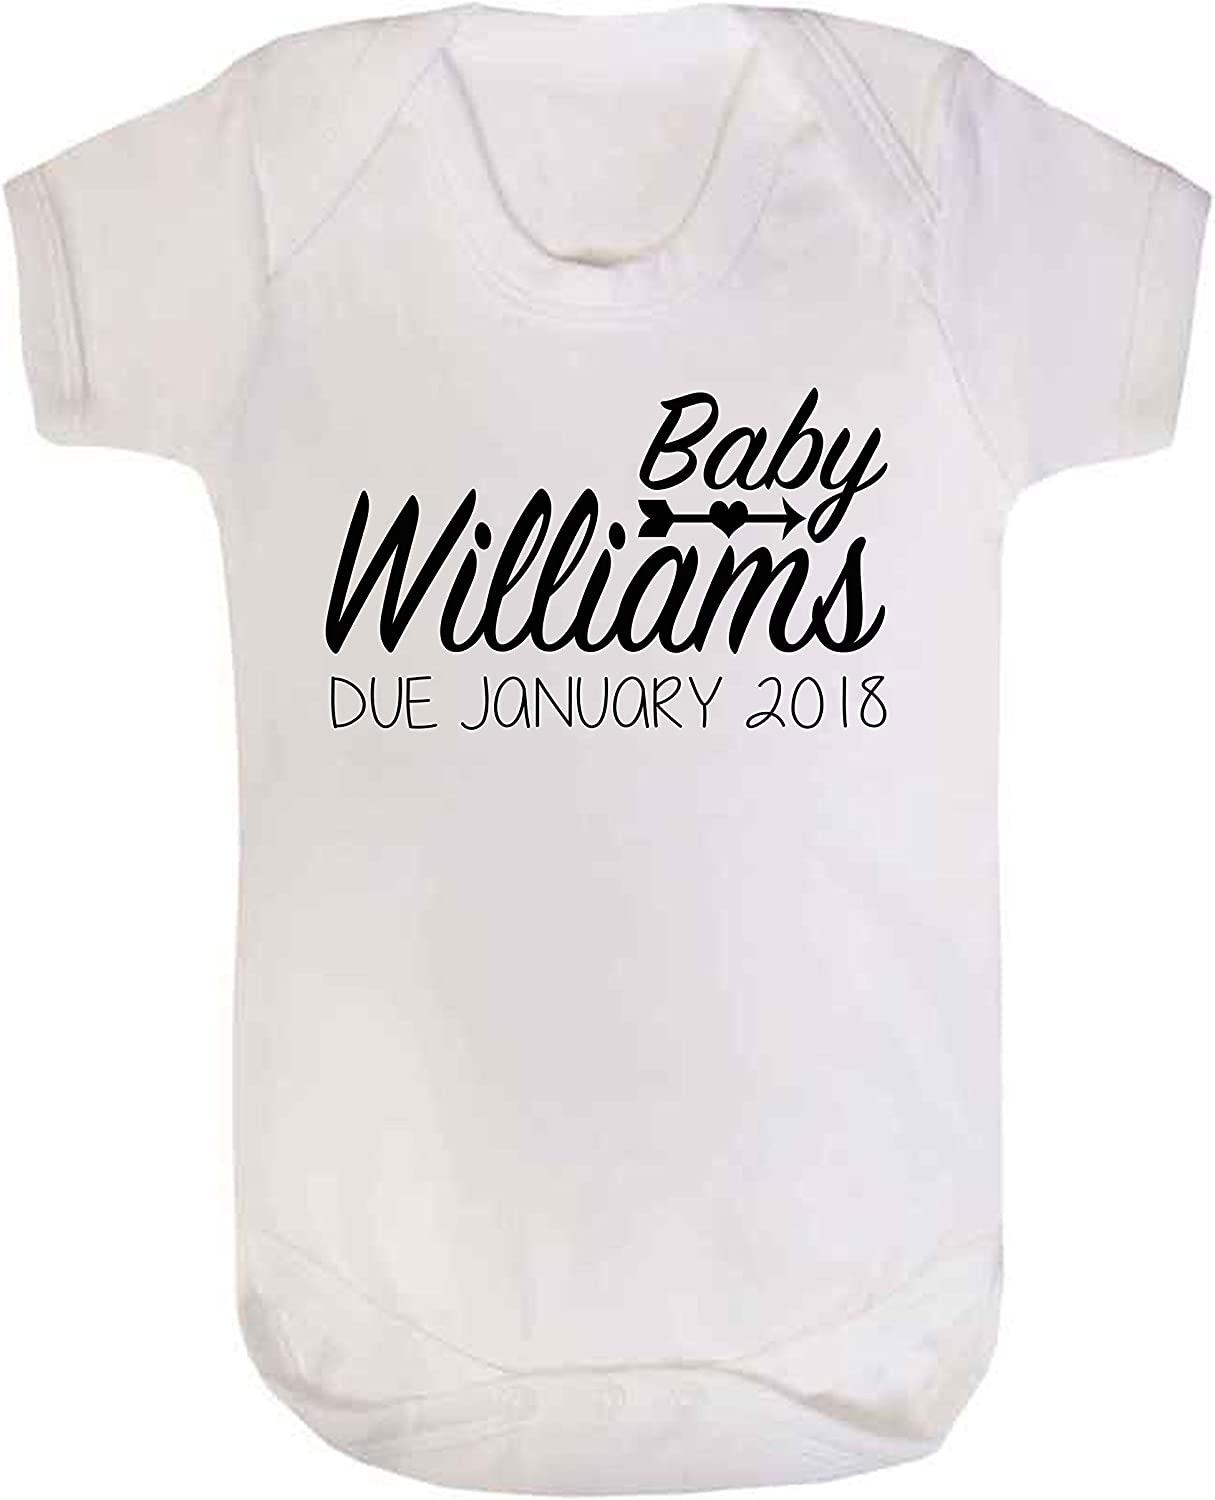 Custom baby surname pregnancy reveal bodysuit due date baby announcement romper announcement shirt baby personalized gift gender reveal